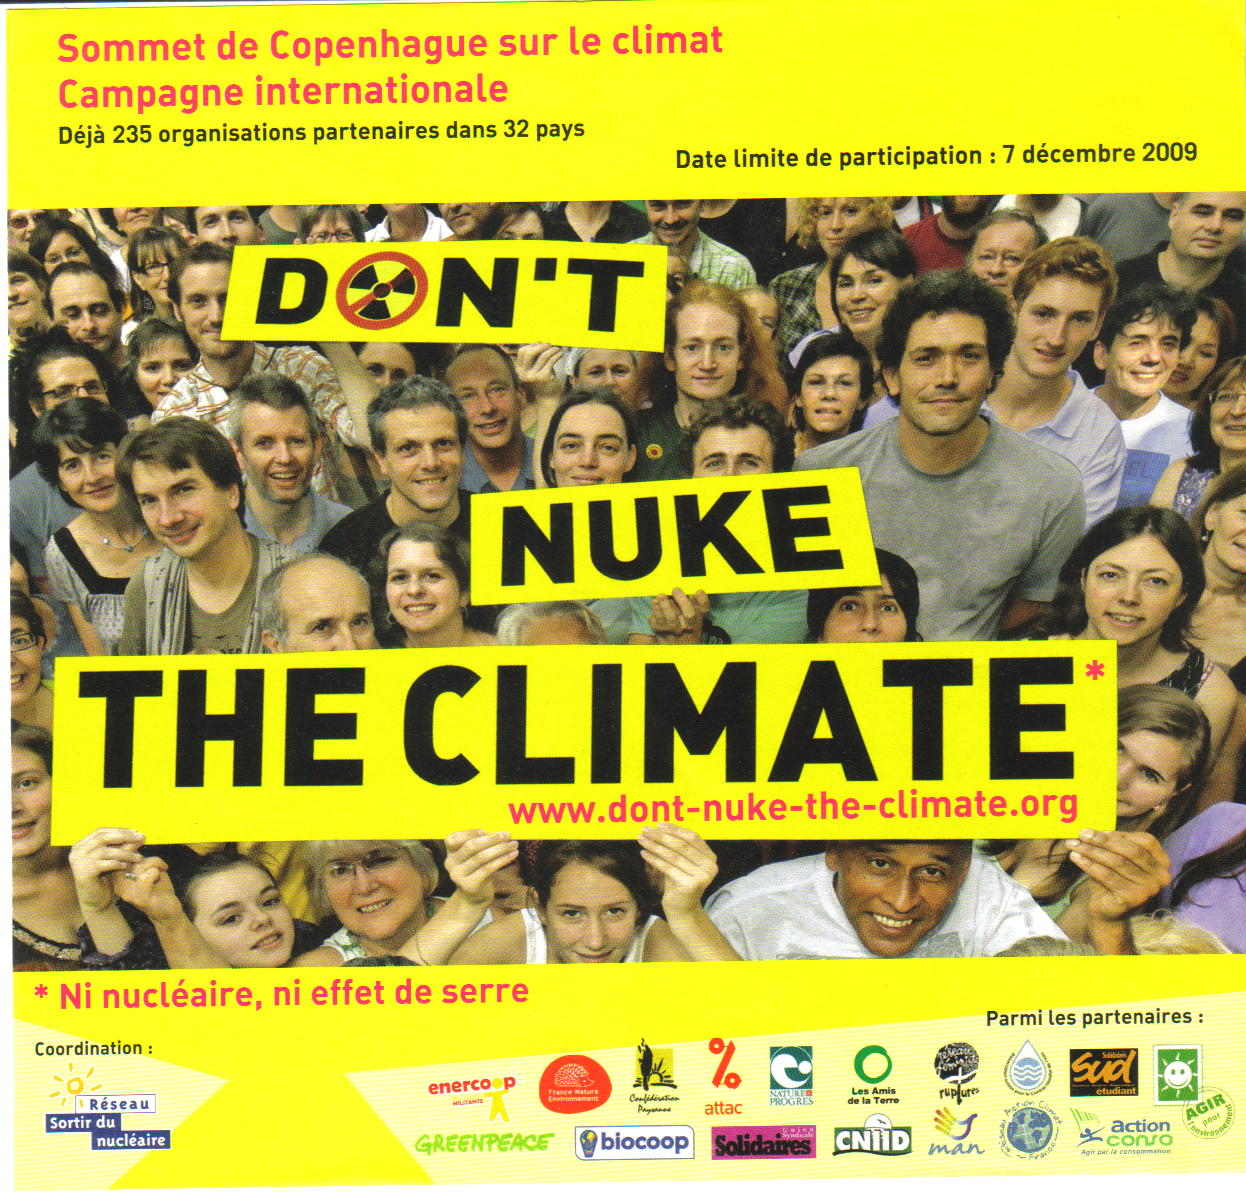 Sommet de Copenhague camapgne internationale www.dont-nuke-the-climate.org